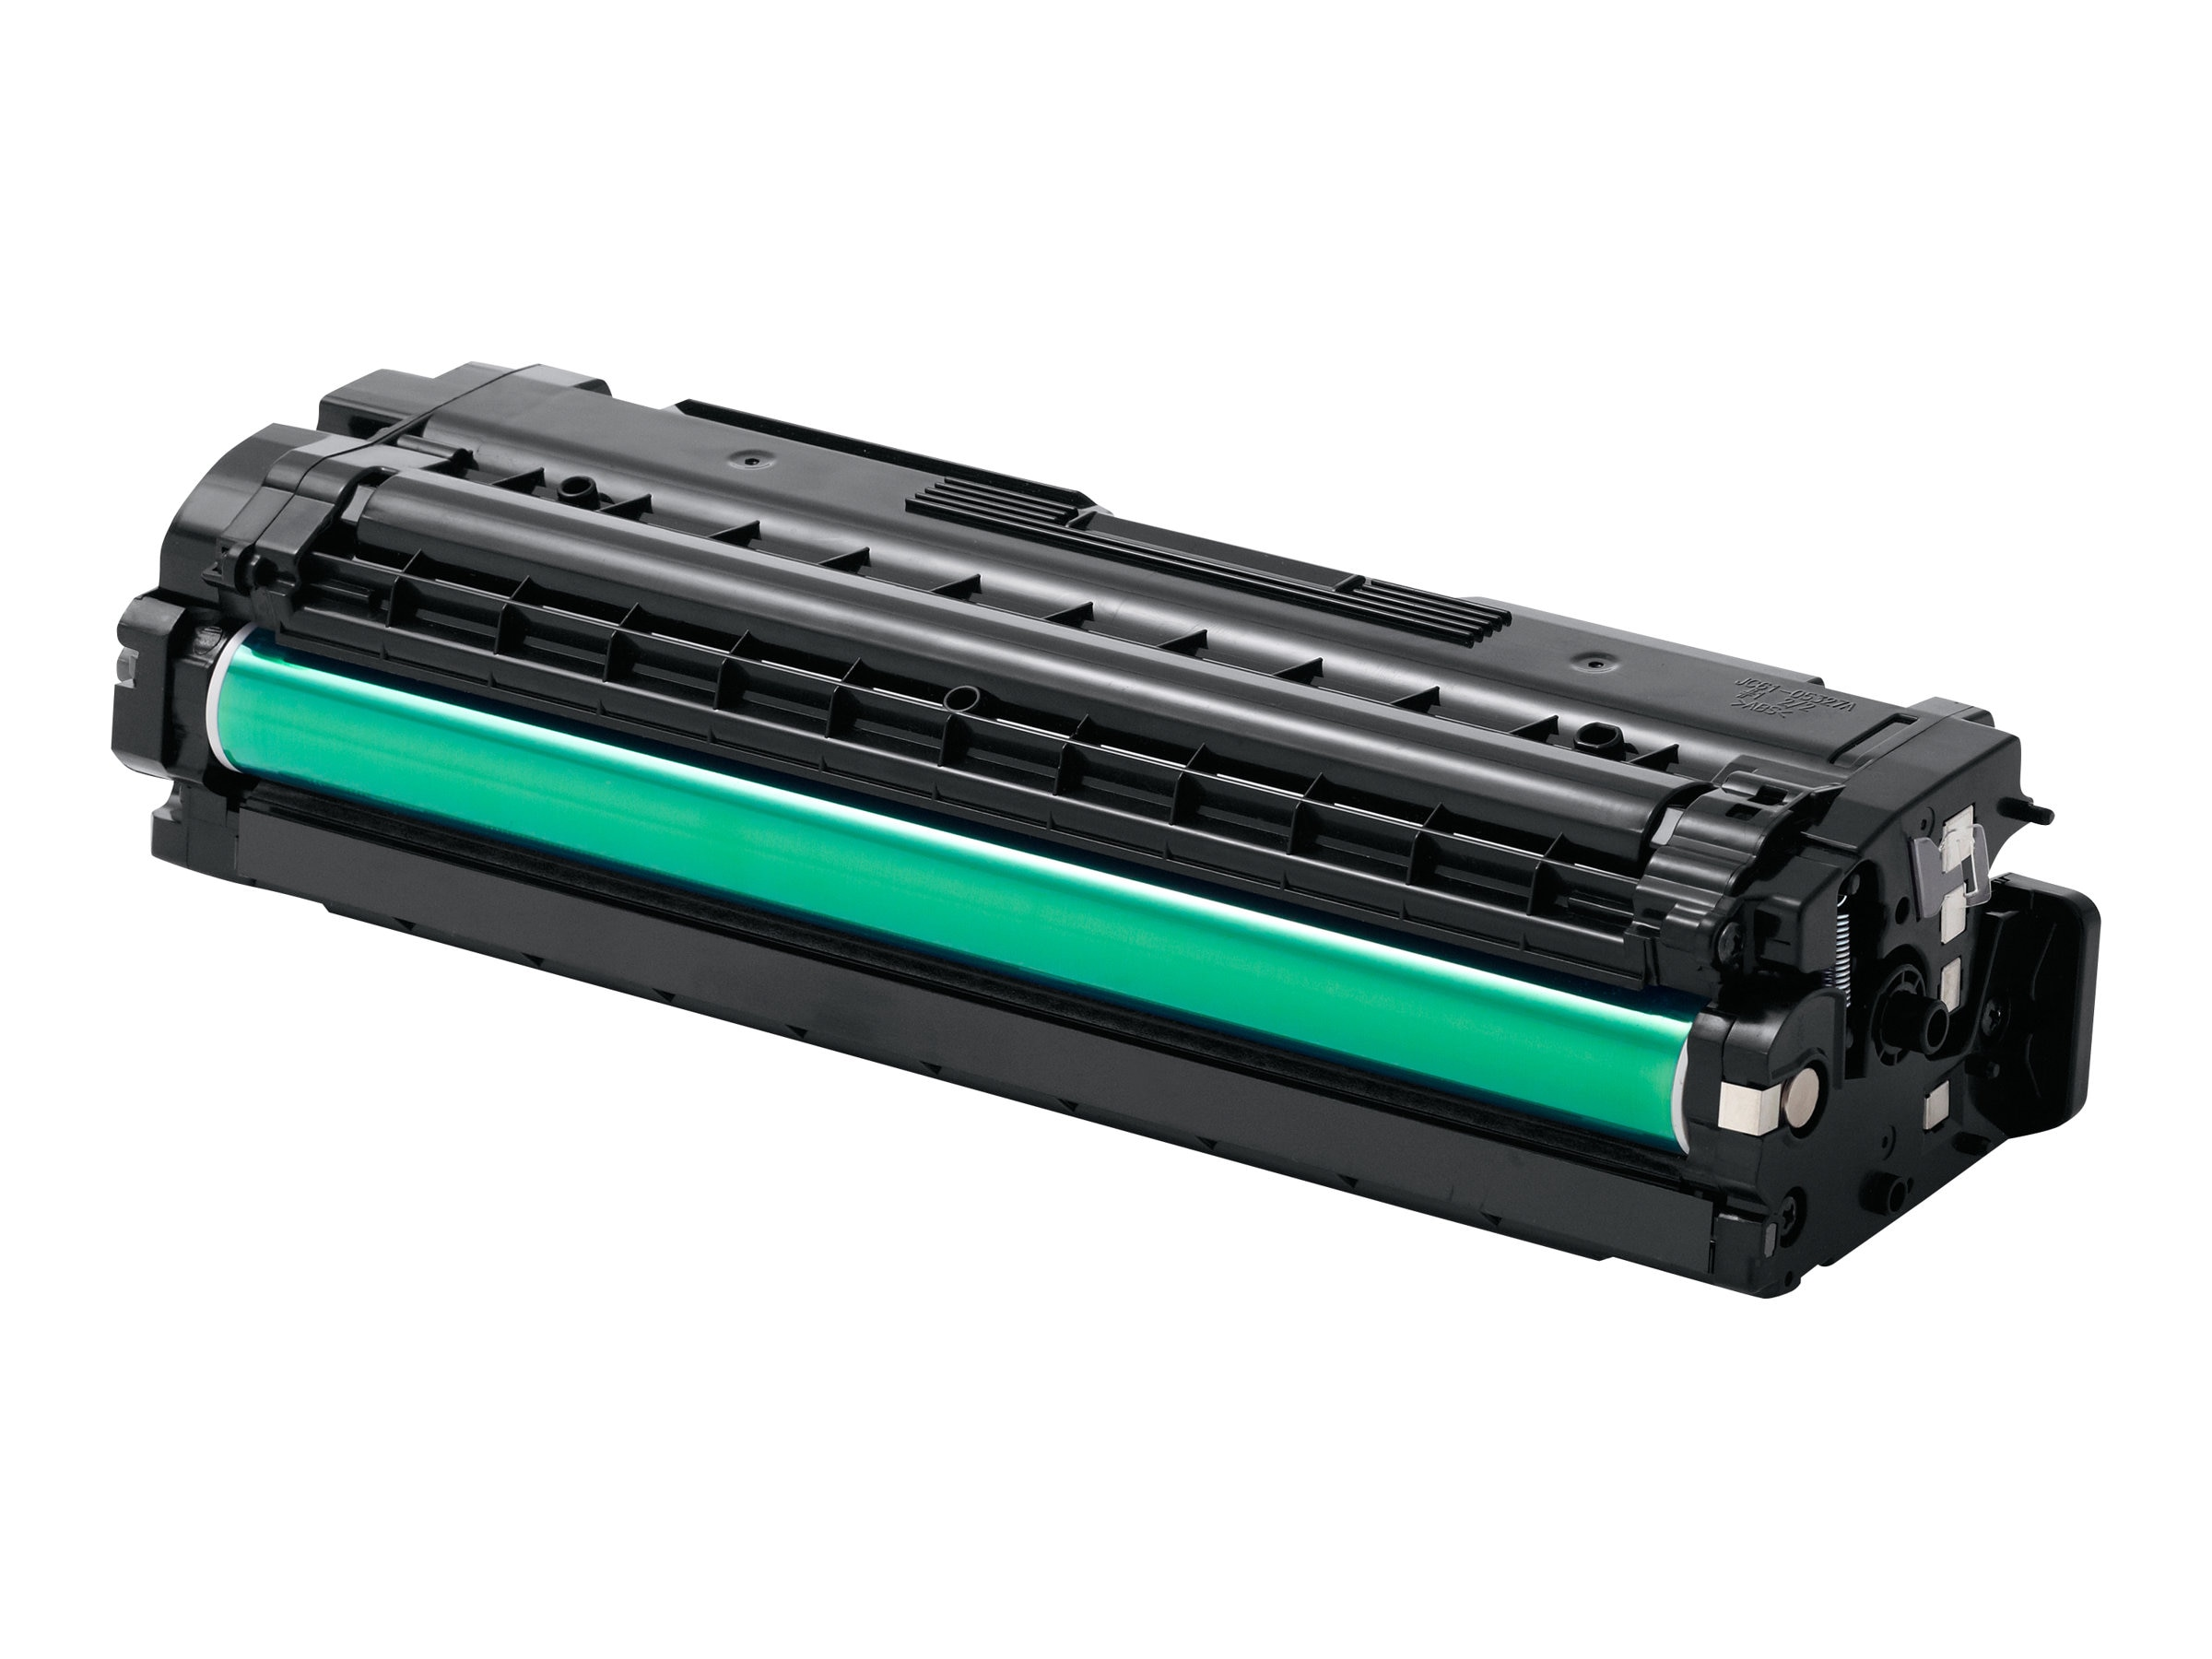 Samsung Yellow Toner Cartridge for CLP-680ND Color Laser Printer & CLX-6260FW & CLX-6260FD Color MFPs